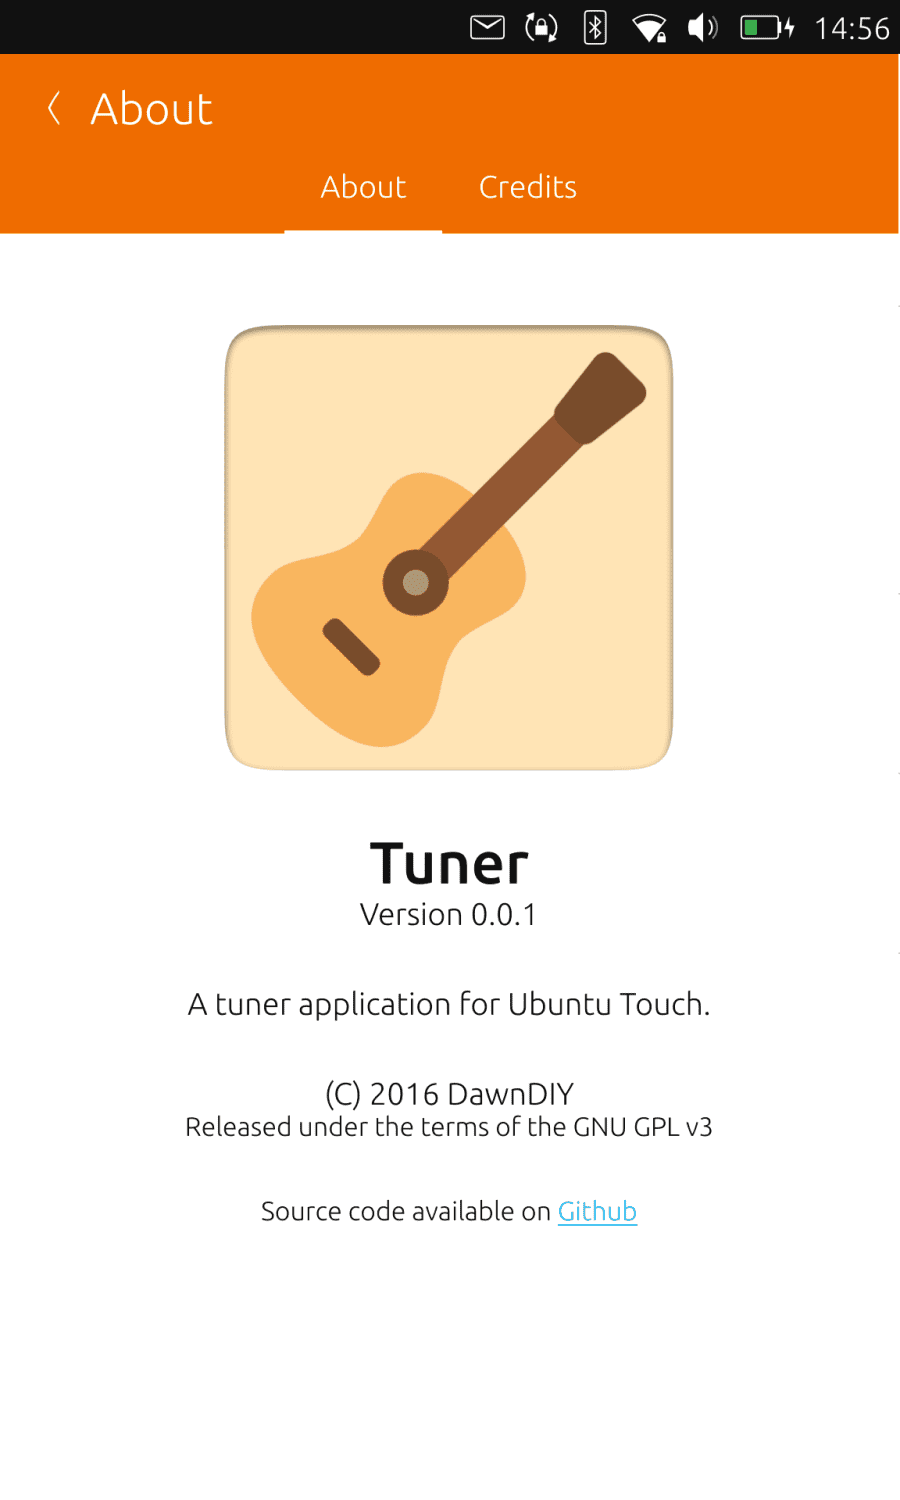 Tuner for Ubuntu Touch